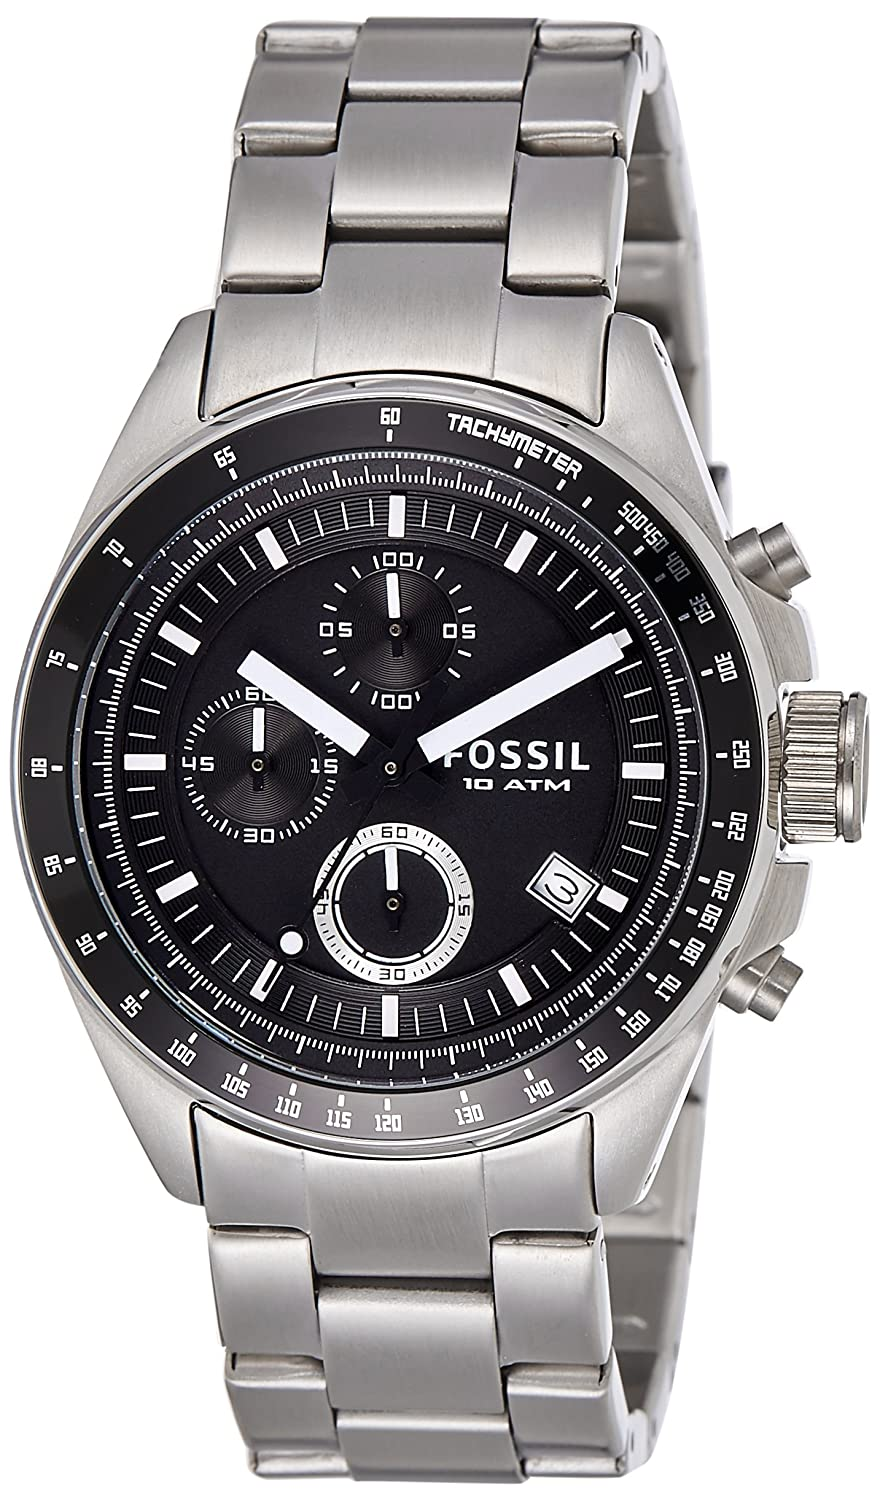 Fossil Best Mens Watches under 5000 Rupees in India